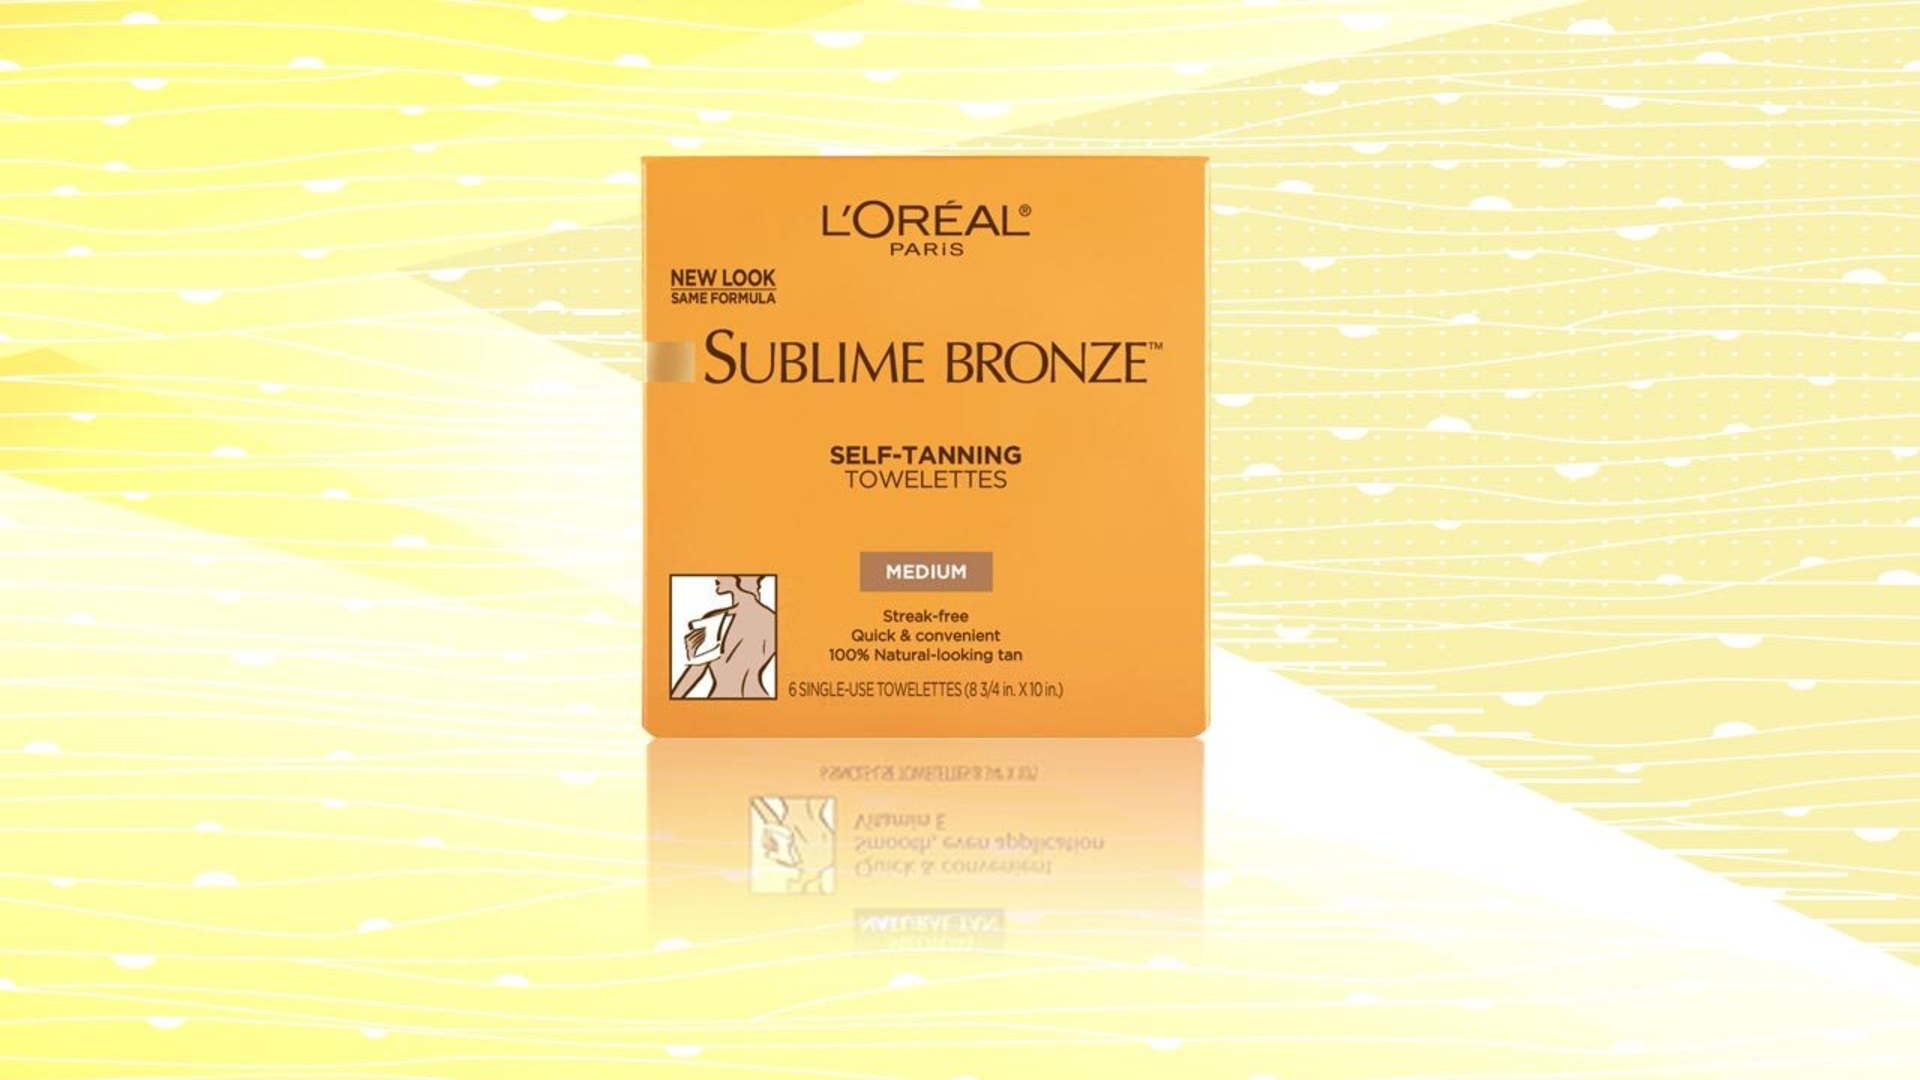 that_vogue_soul - Loreal-Paris-BMAG-Article-The-Right-Way-To-Use-Self-Tanning-Towelettes-D